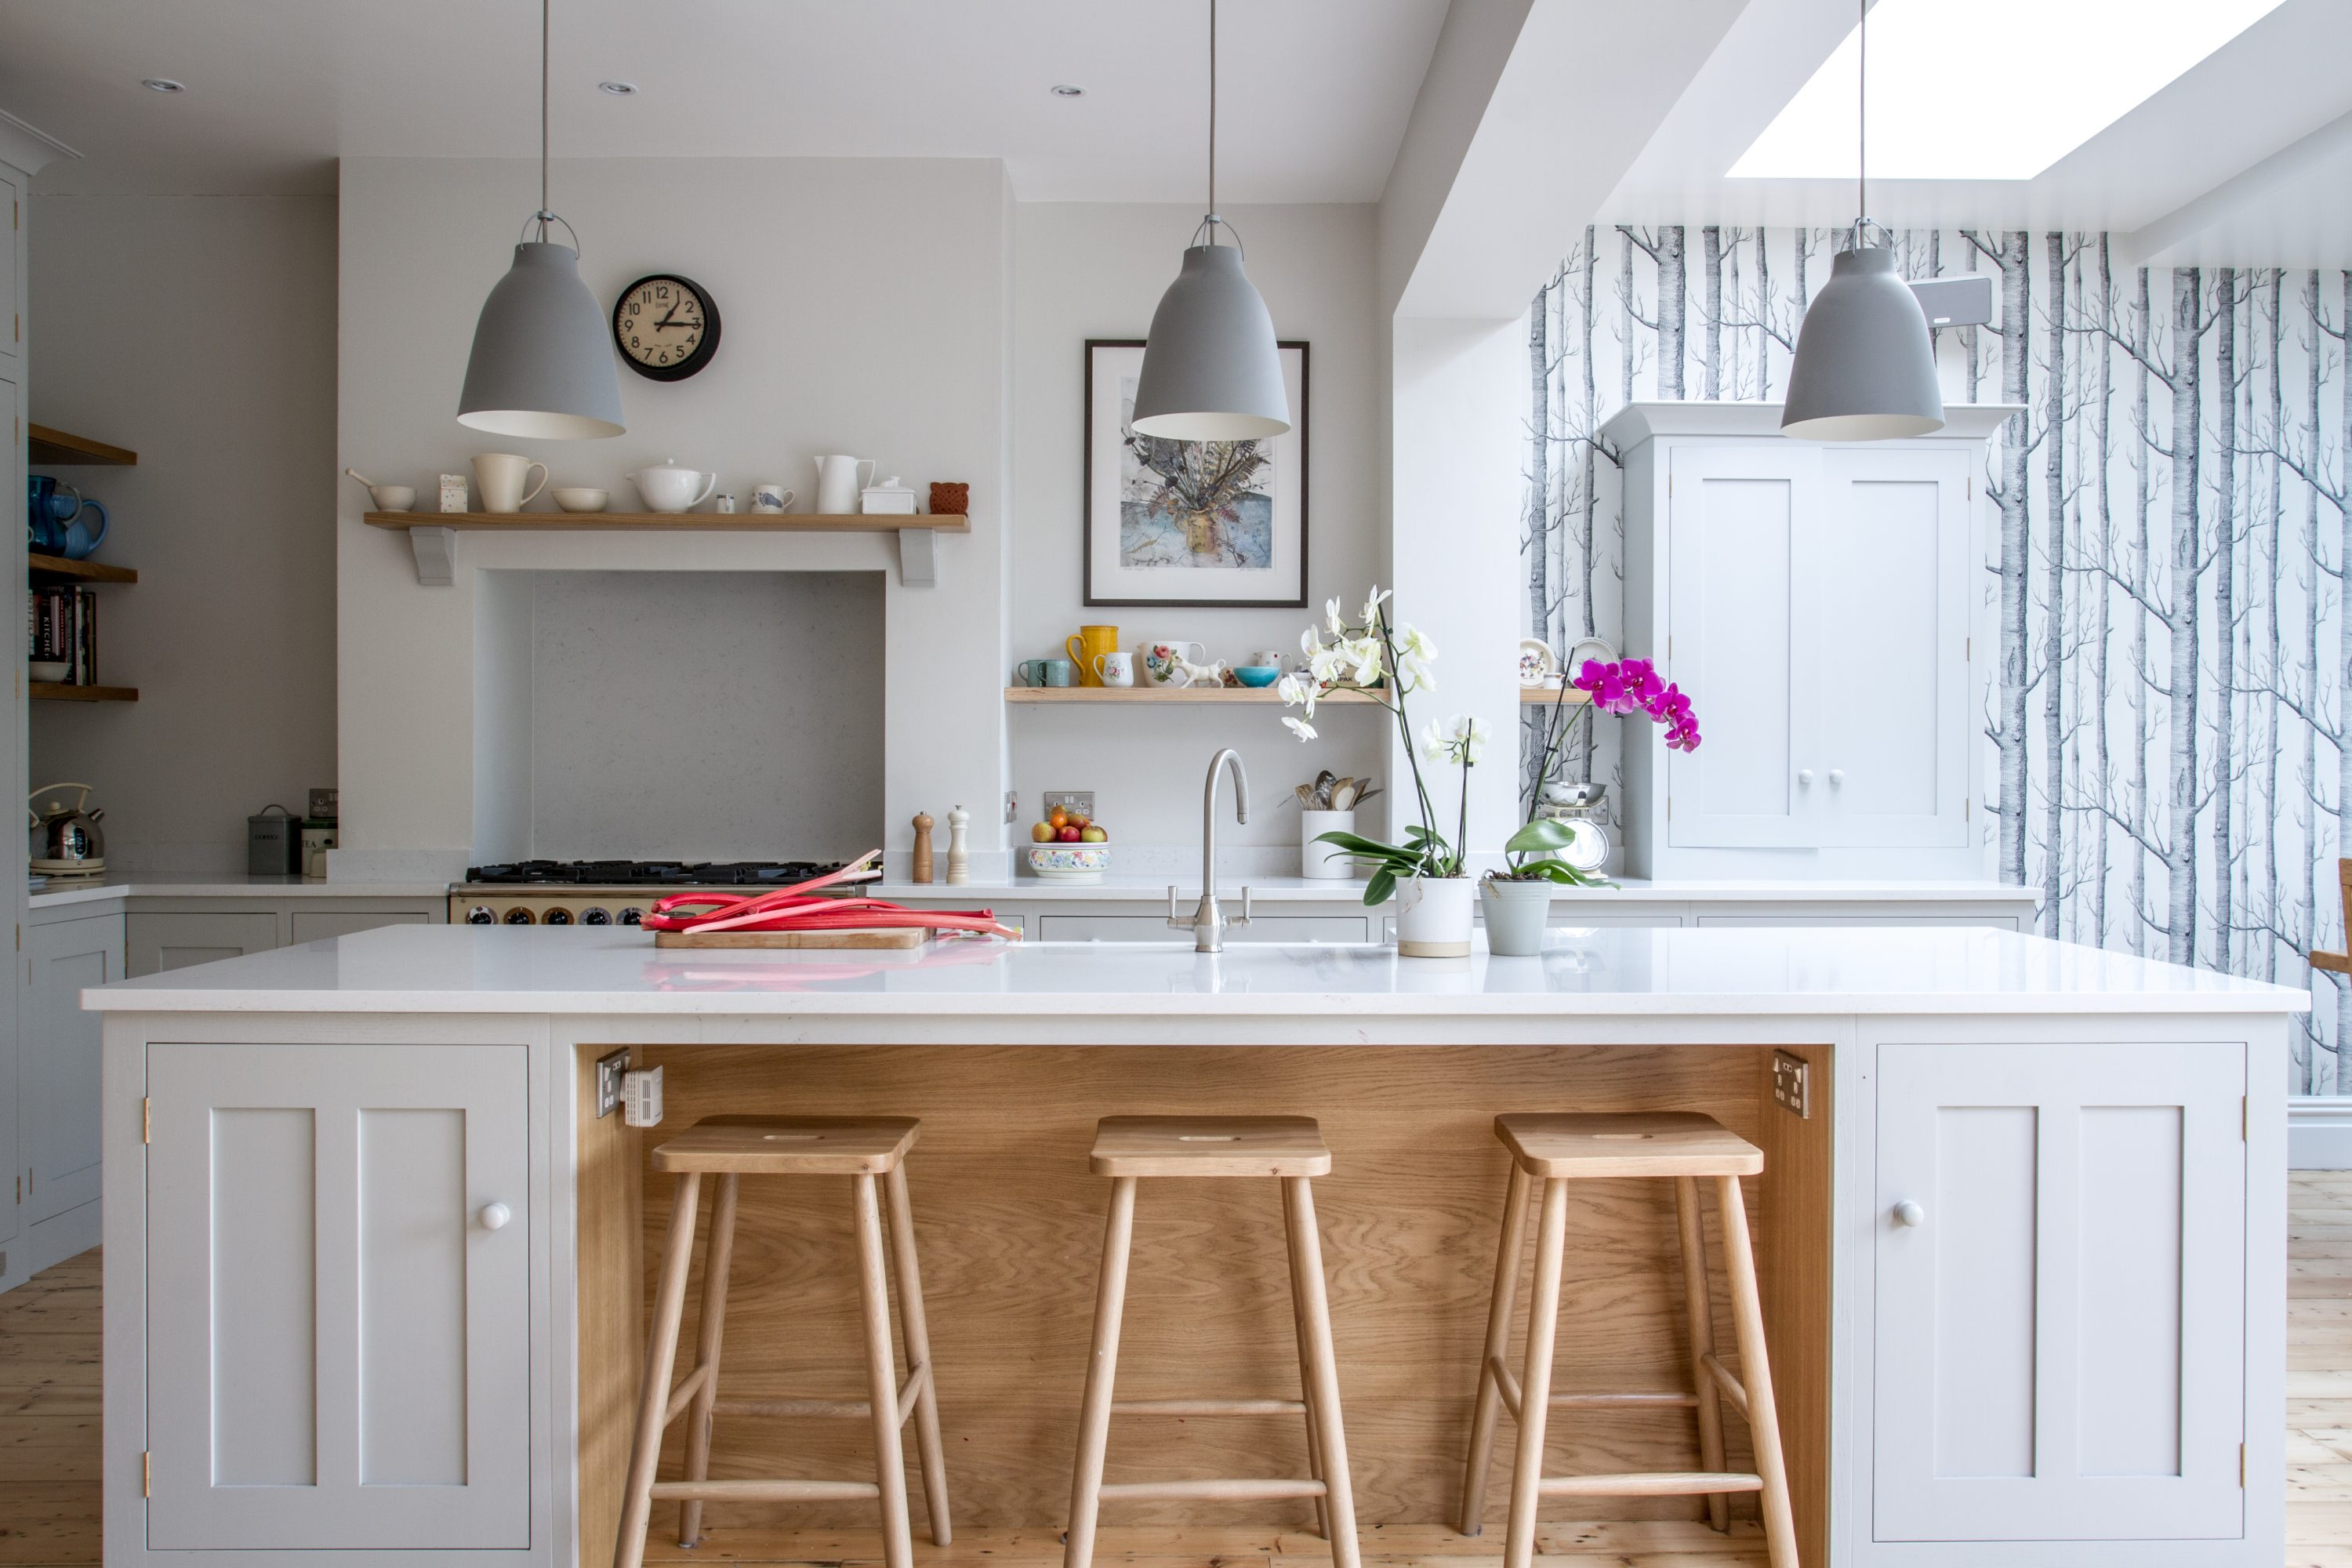 west london kitchen design. View of shaker style kitchen with island  pendant lights and floating shelves Sustainable Kitchens Installing in London